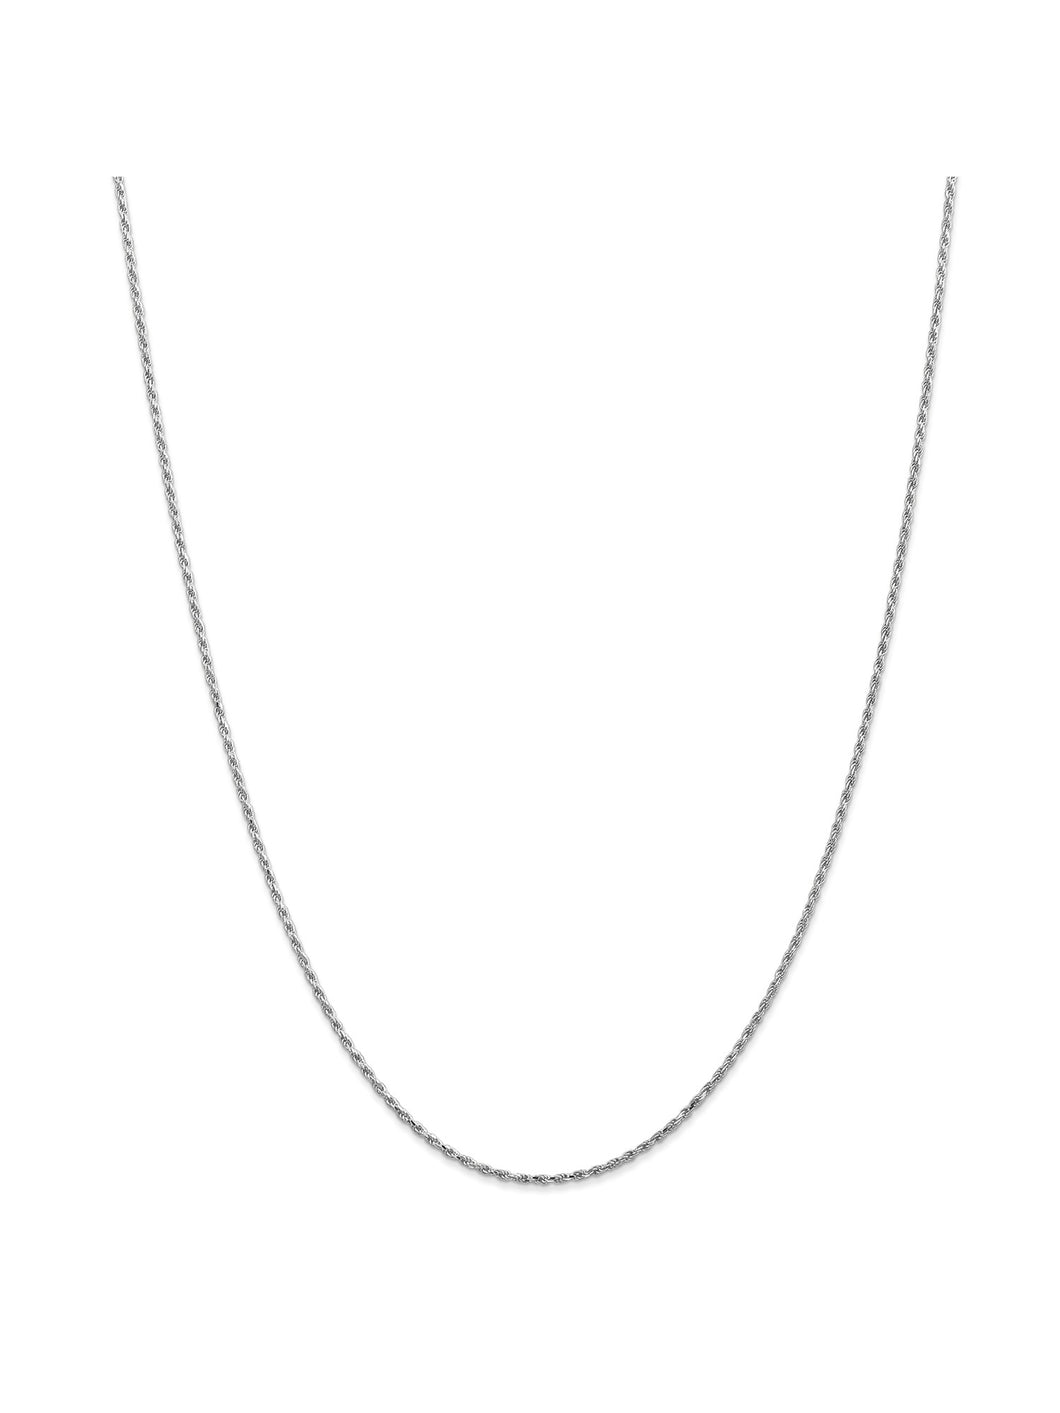 10k White Gold 2.25mm D/C Extra-Lite Rope Chain Necklace